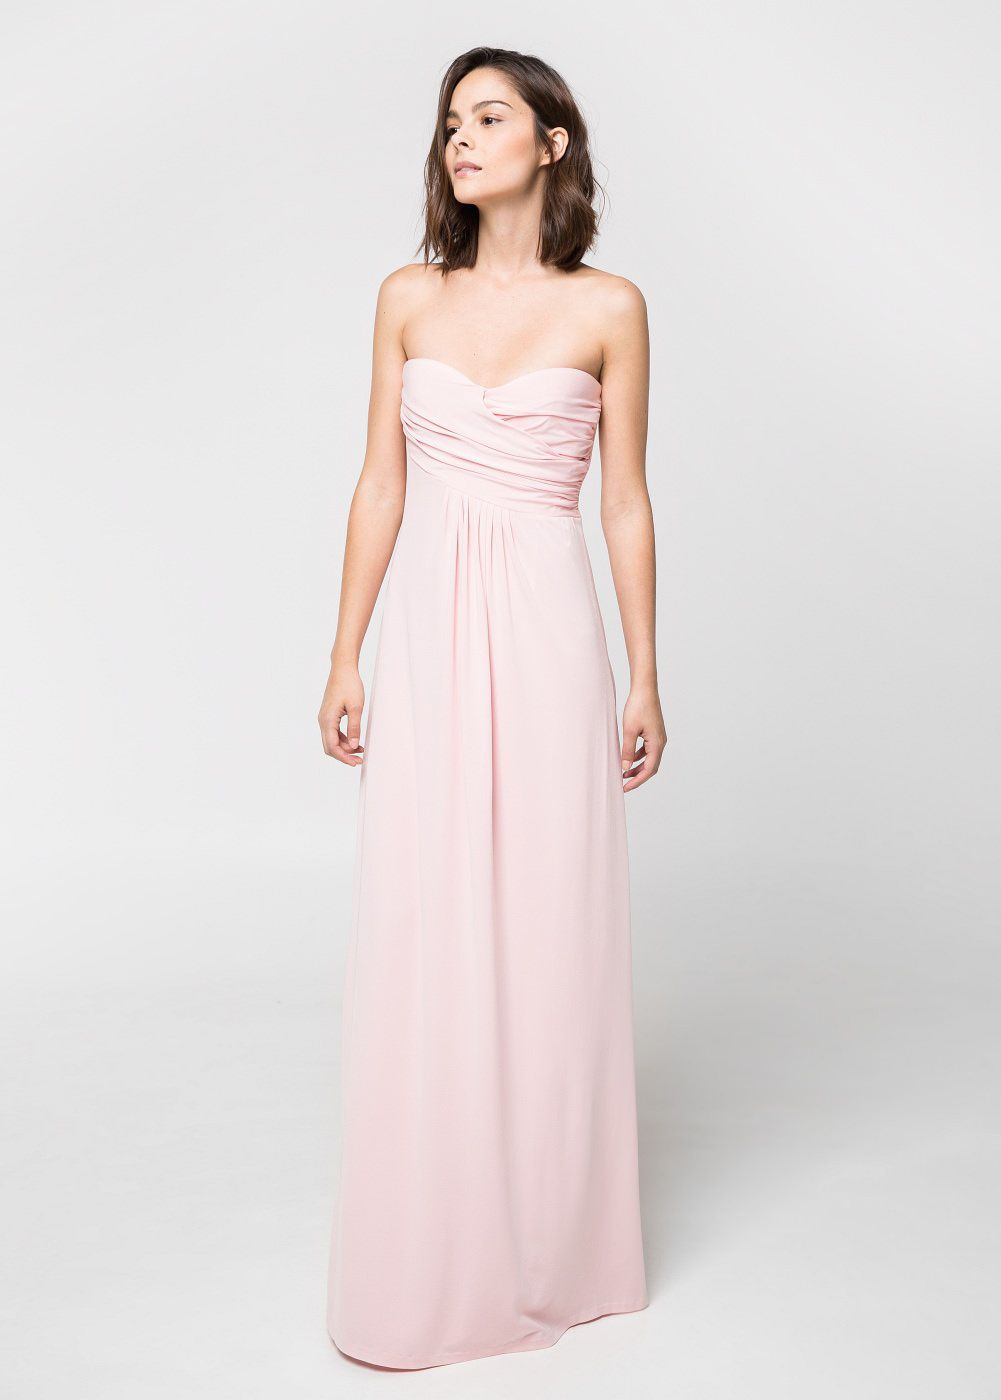 7 affordable pink long dresses to wear to a wedding laiamagazine mango pink blush draped gown ombrellifo Choice Image